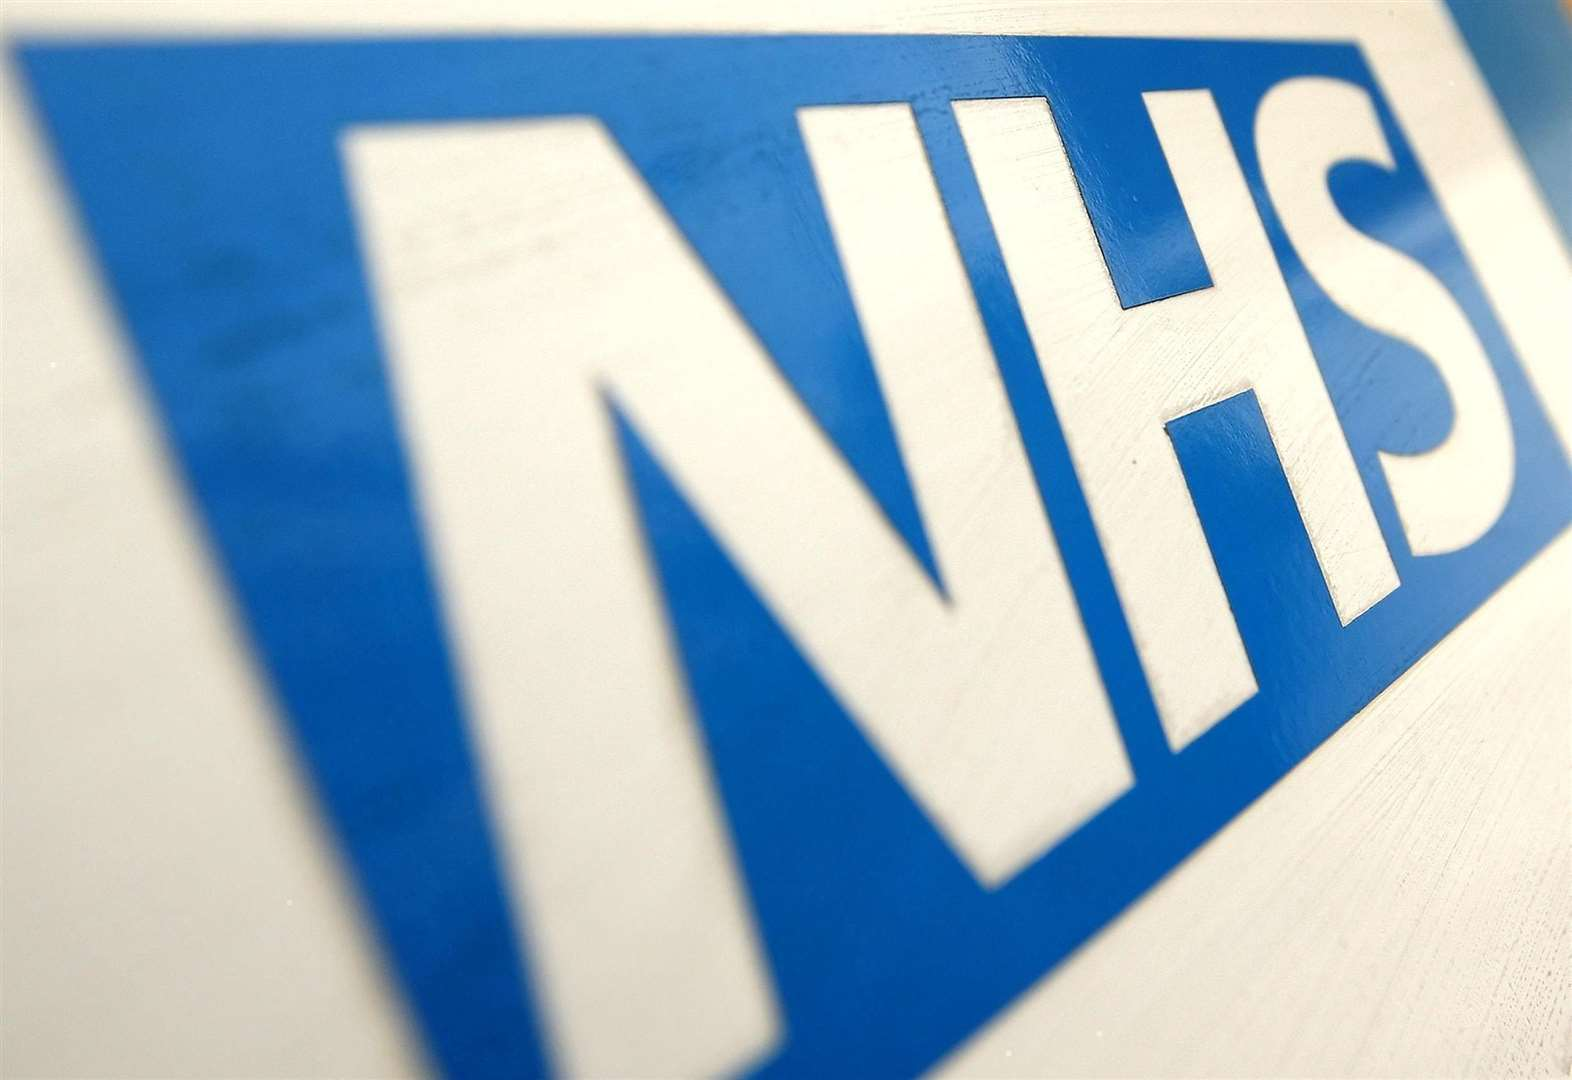 Residents asked to help shape NHS and care services